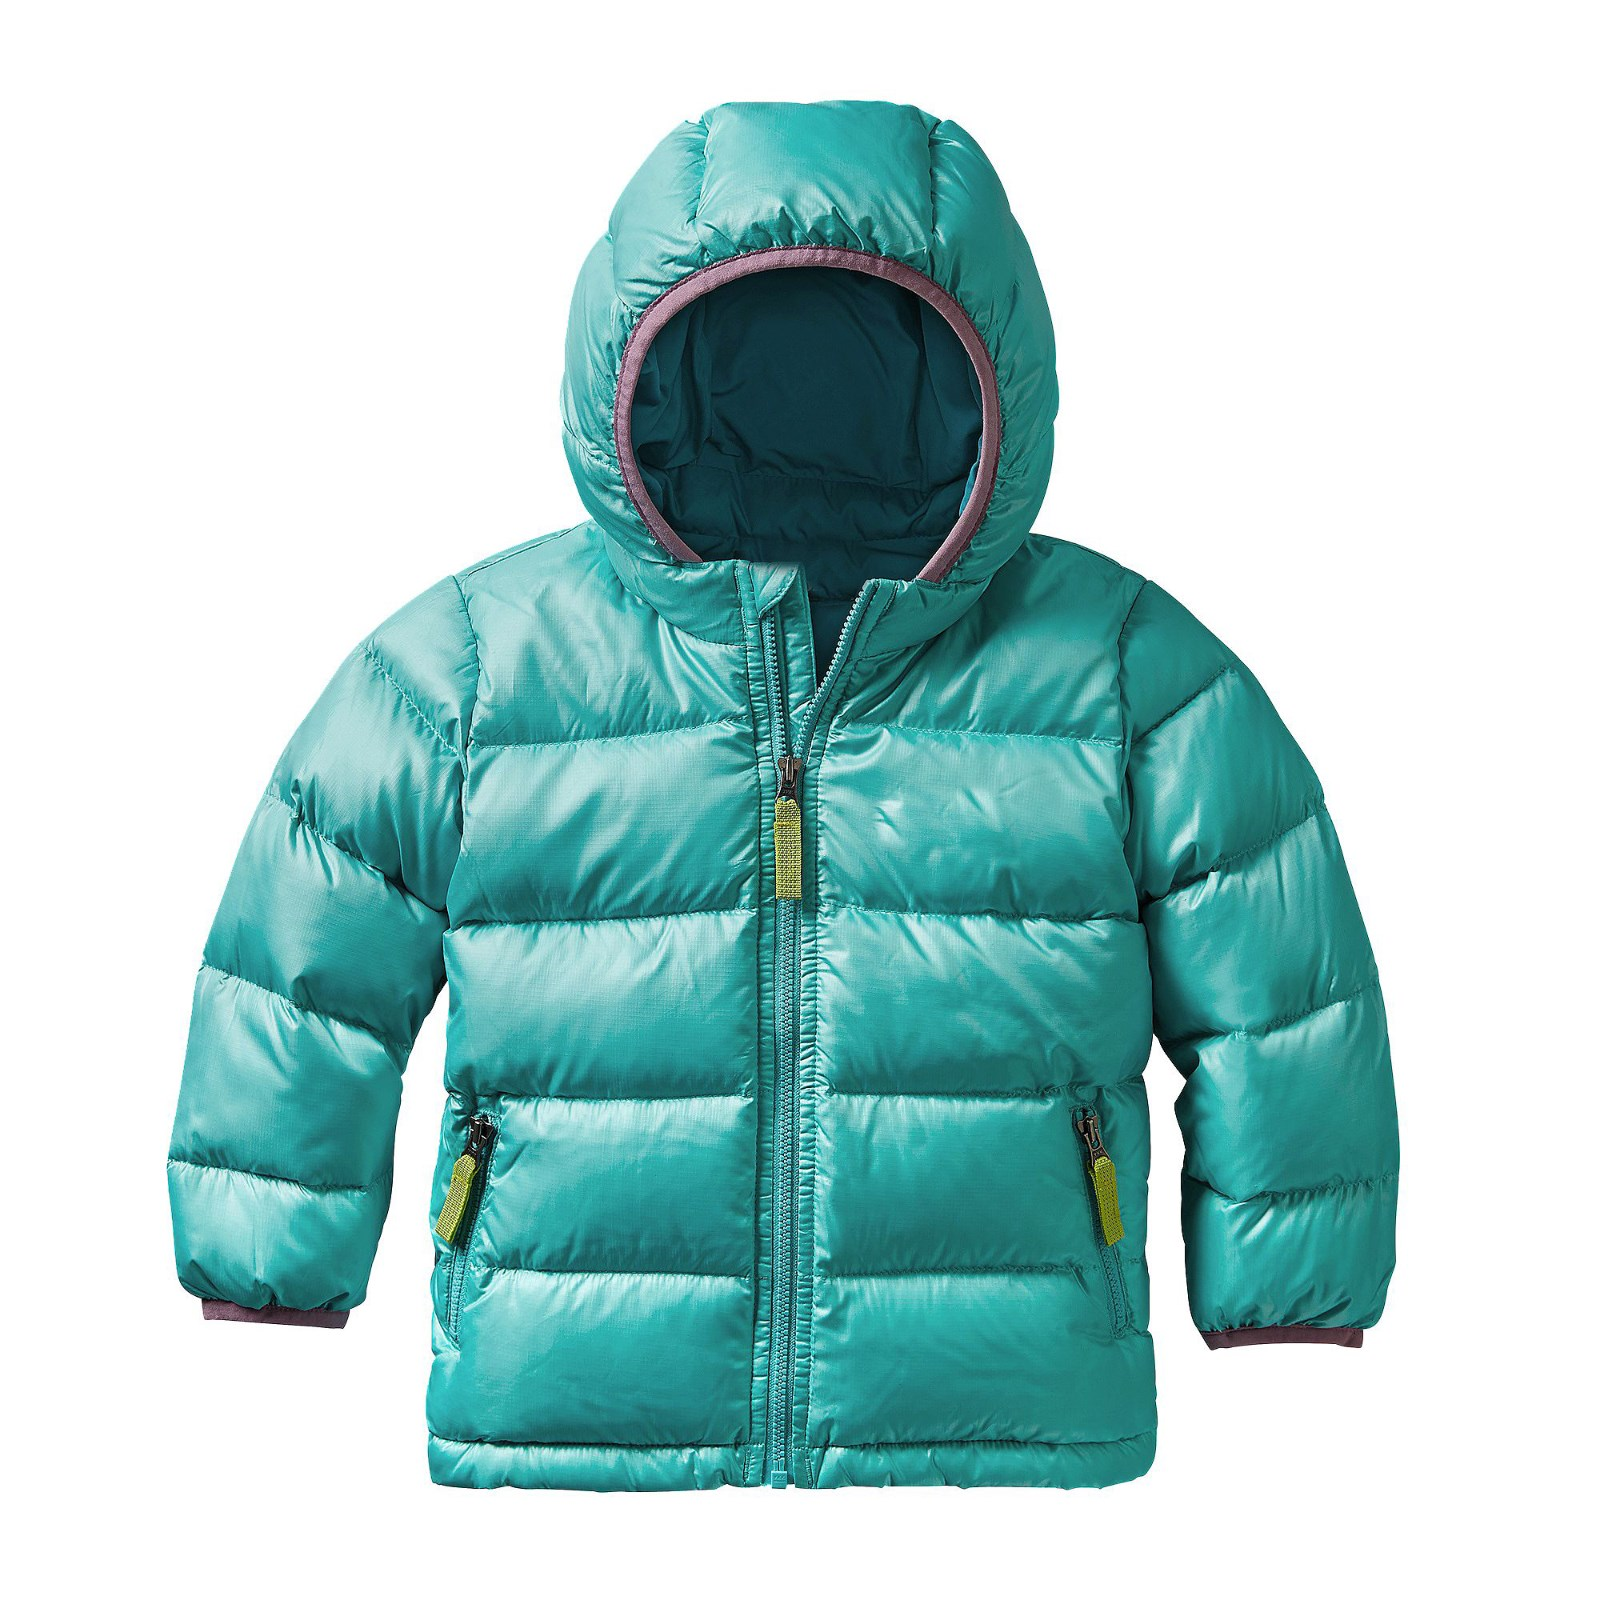 Baby Down Jacket Hoody Manufacturers, Baby Down Jacket Hoody Factory, Supply Baby Down Jacket Hoody